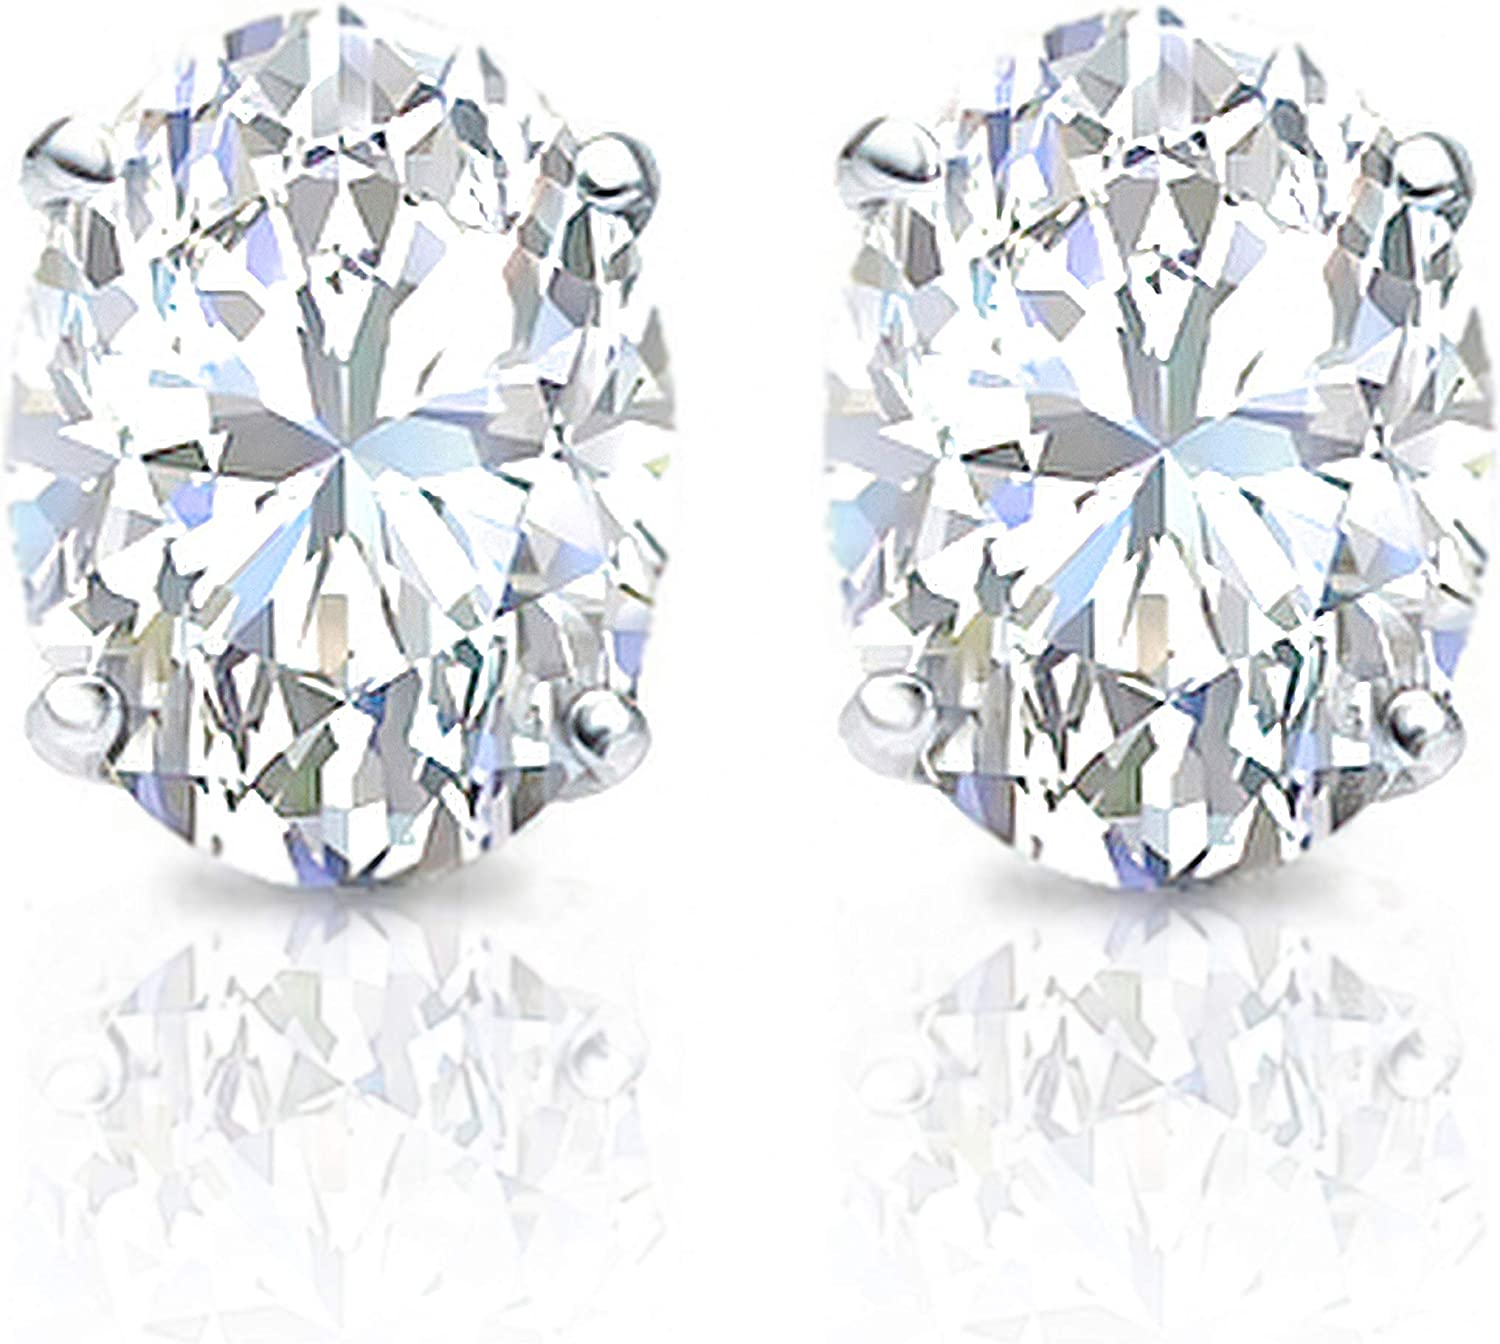 0.33-0.50 Mail order cts Oval Shape Lab-Grown New product! New type Studs 14K Diamond in Earring